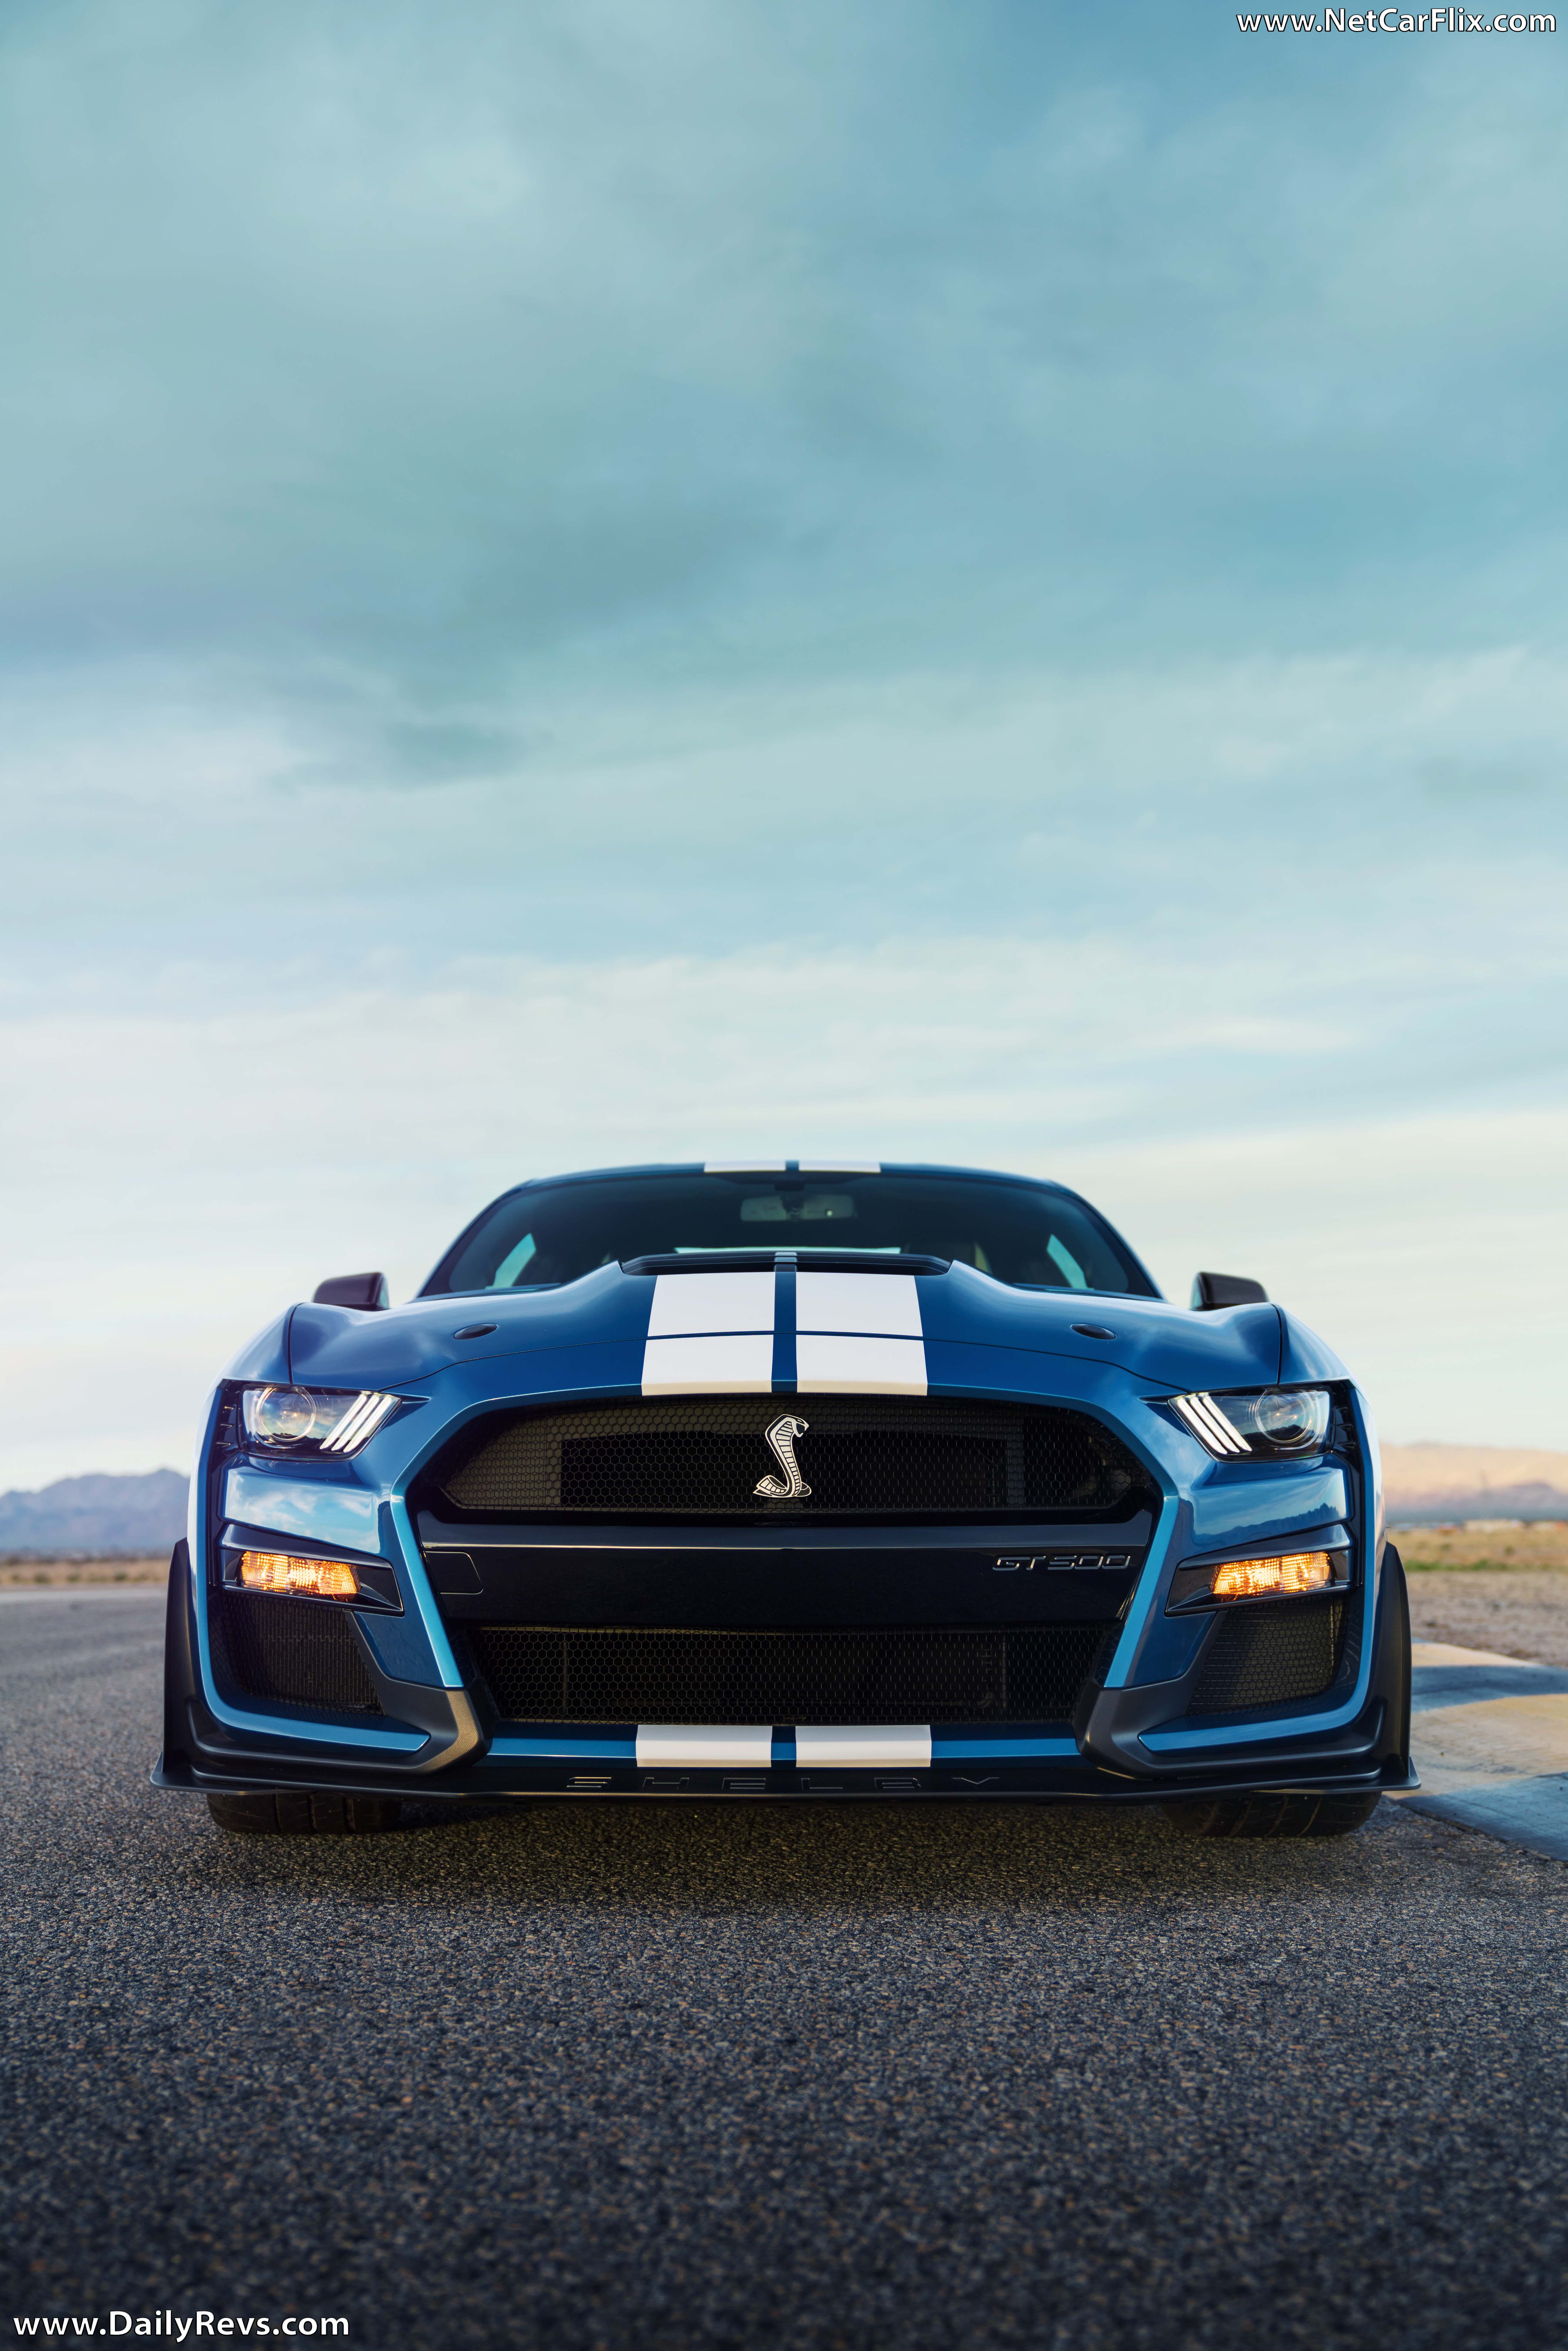 2020 Ford Mustang Shelby GT500 - HD Pictures, Videos ...